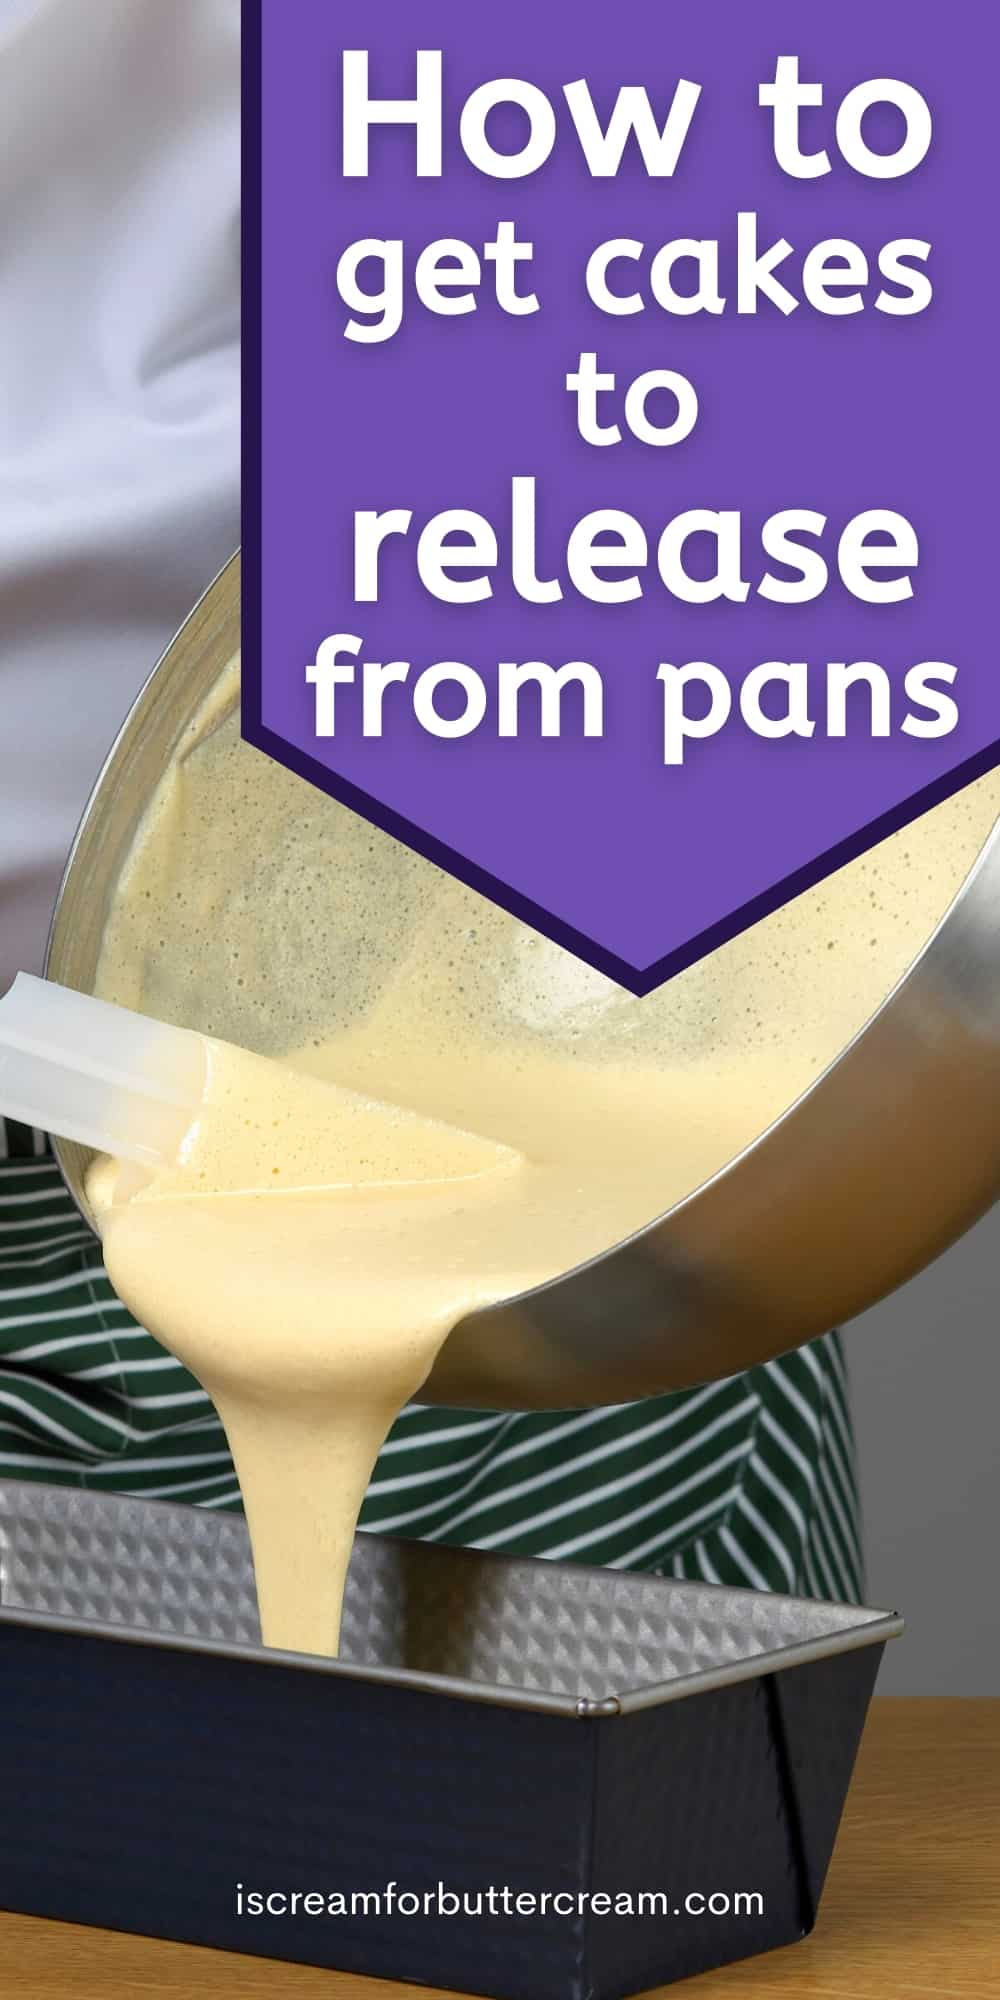 how to release cakes pin graphic 2